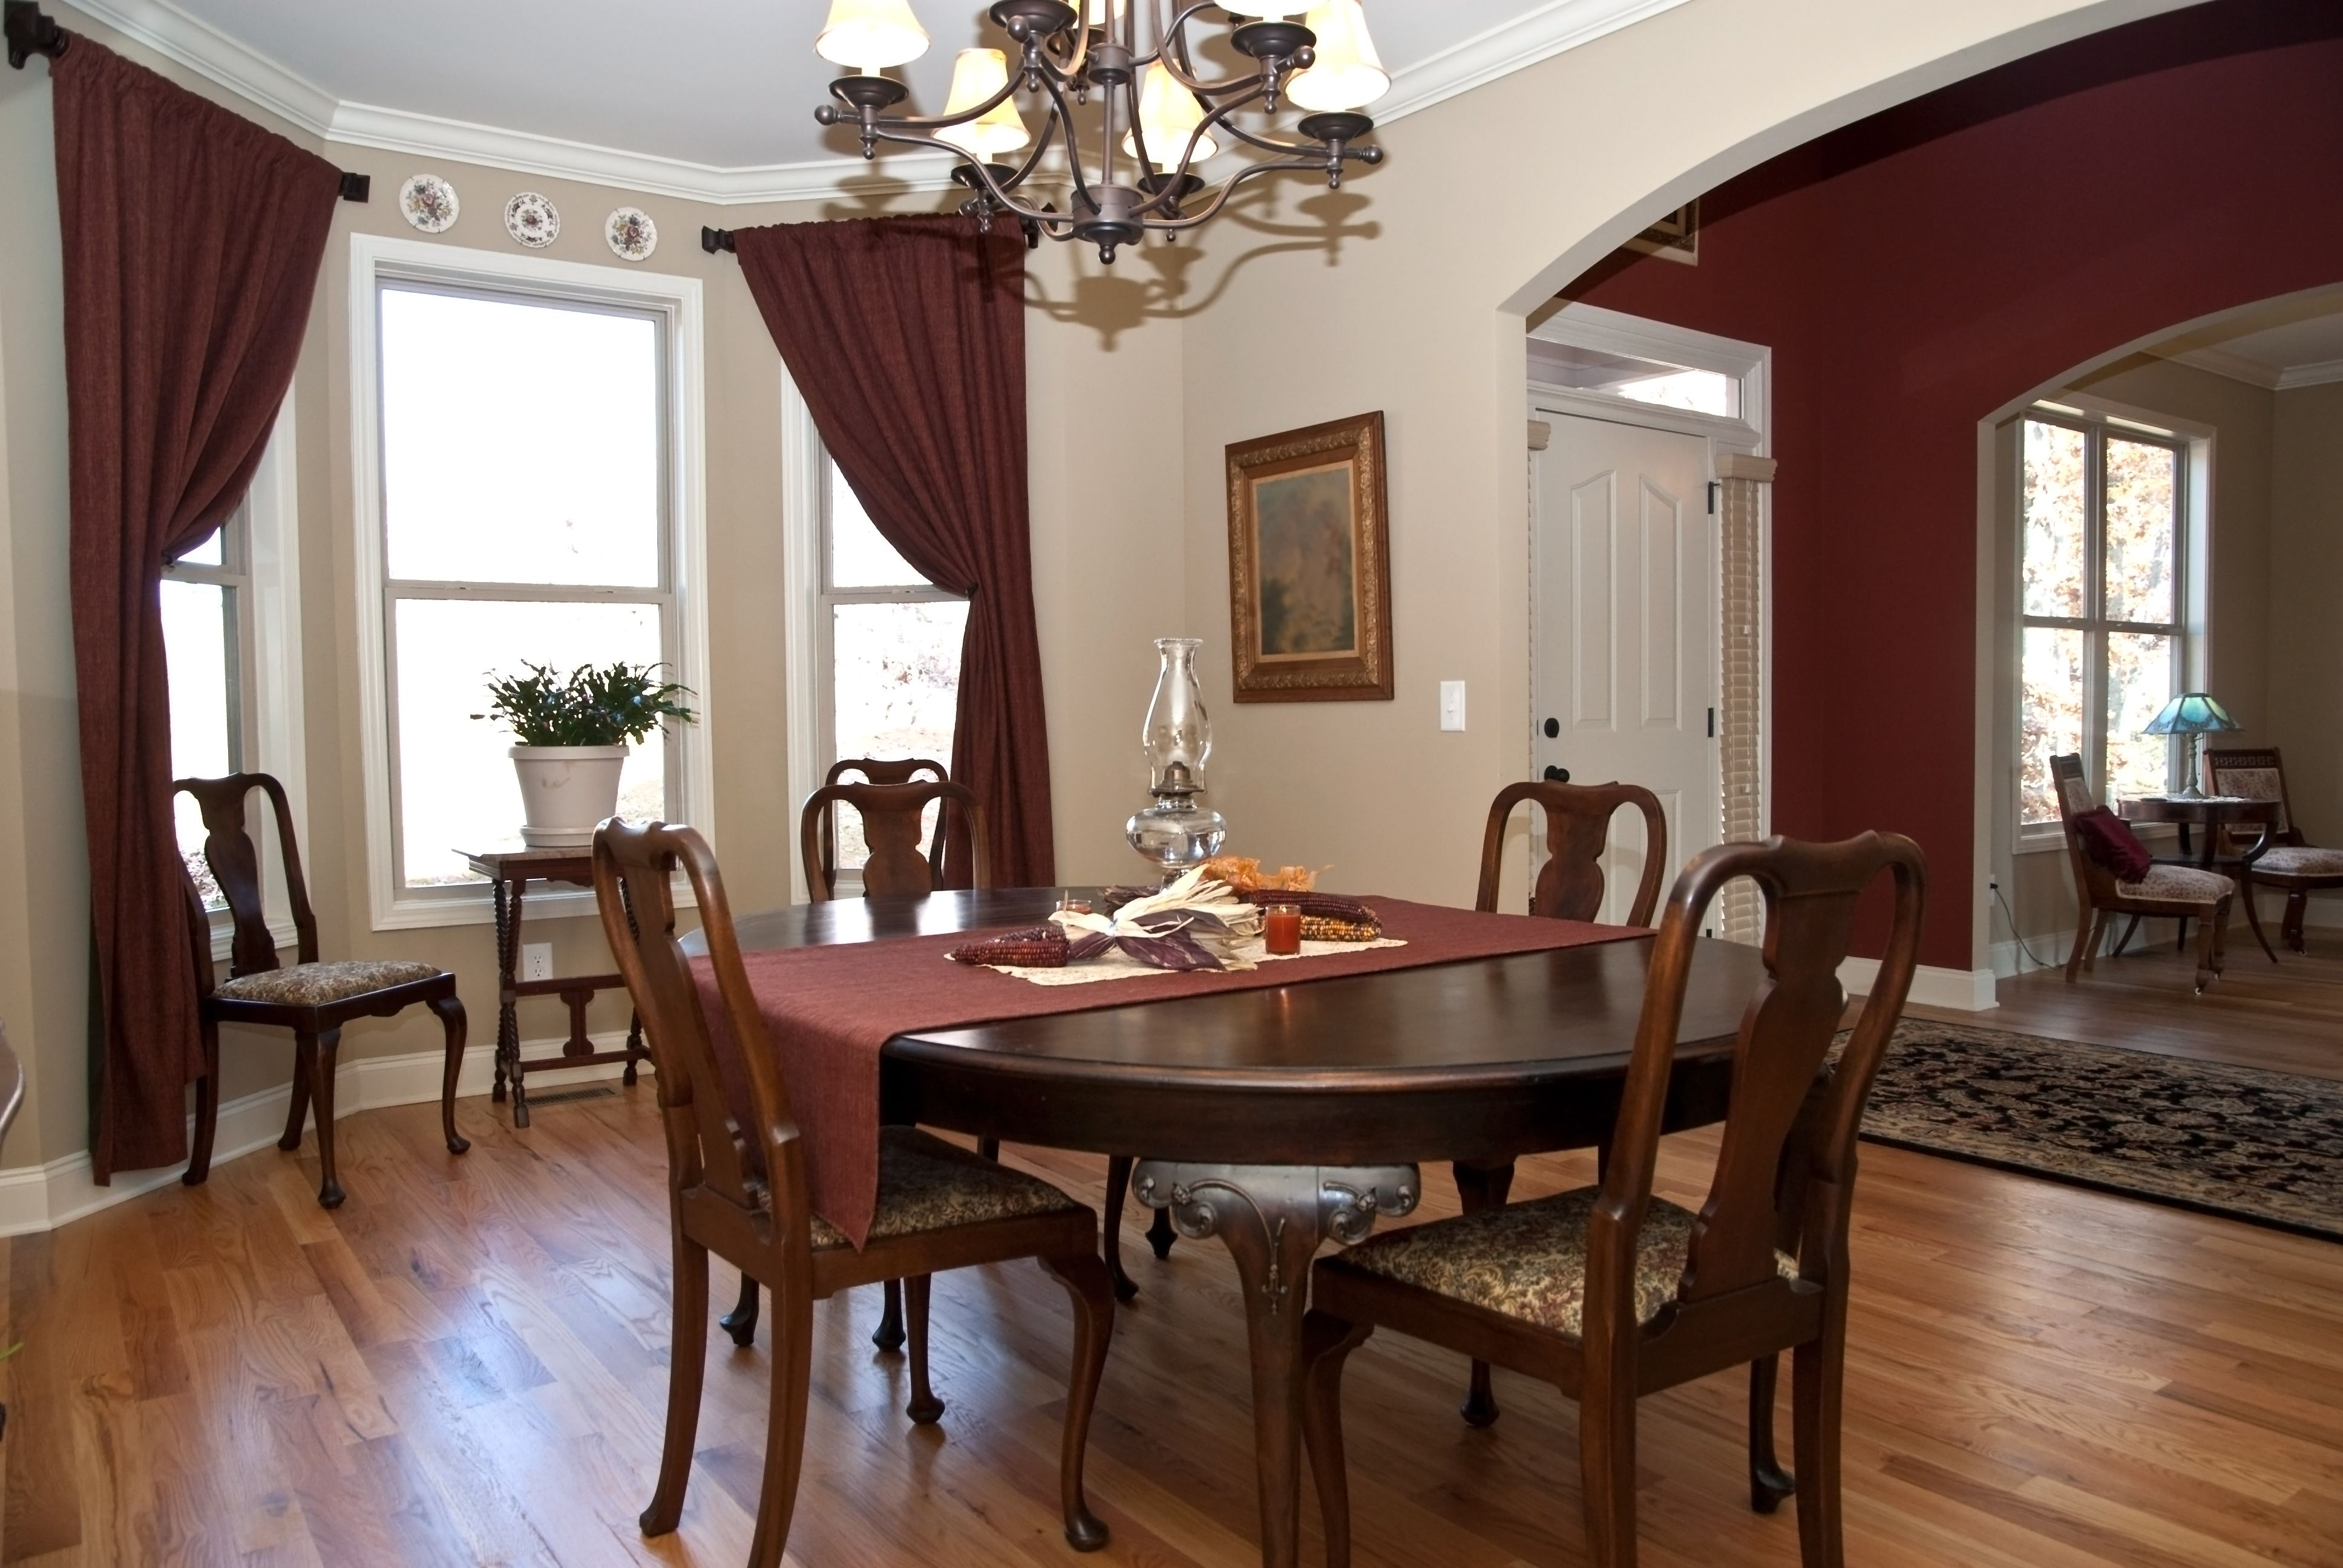 roomdining with roomurtains impressive curtain green concept sage room wall ideas for curtains pinterest pictures drapes swag dining